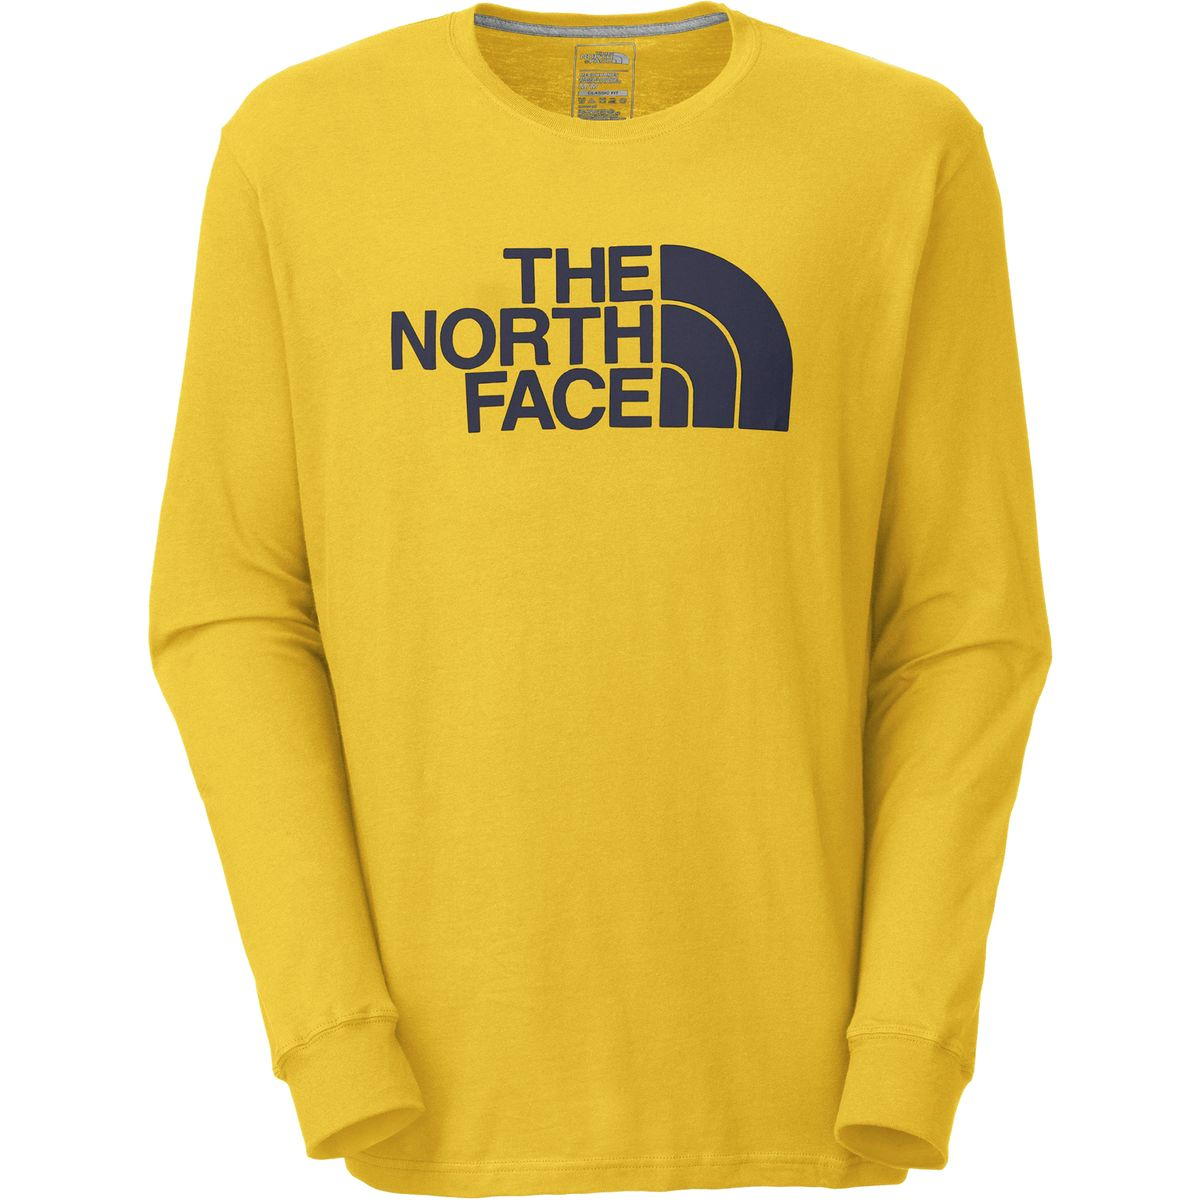 The North Face Half Dome T-Shirt - Long-Sleeve - Men